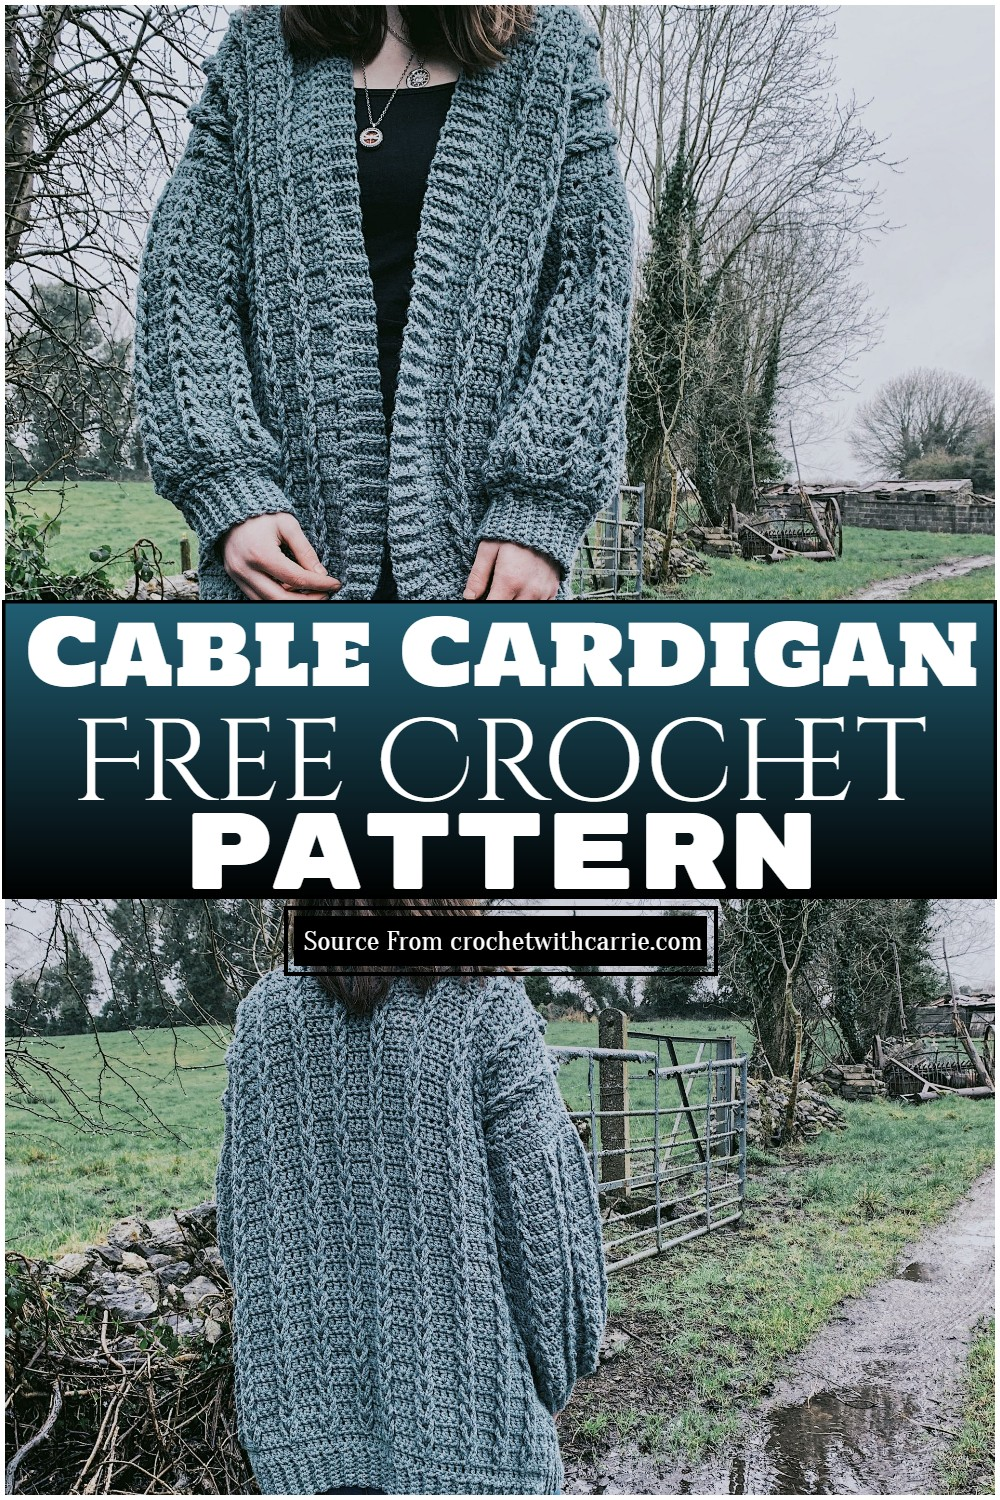 Cable Cardigan Crochet Pattern